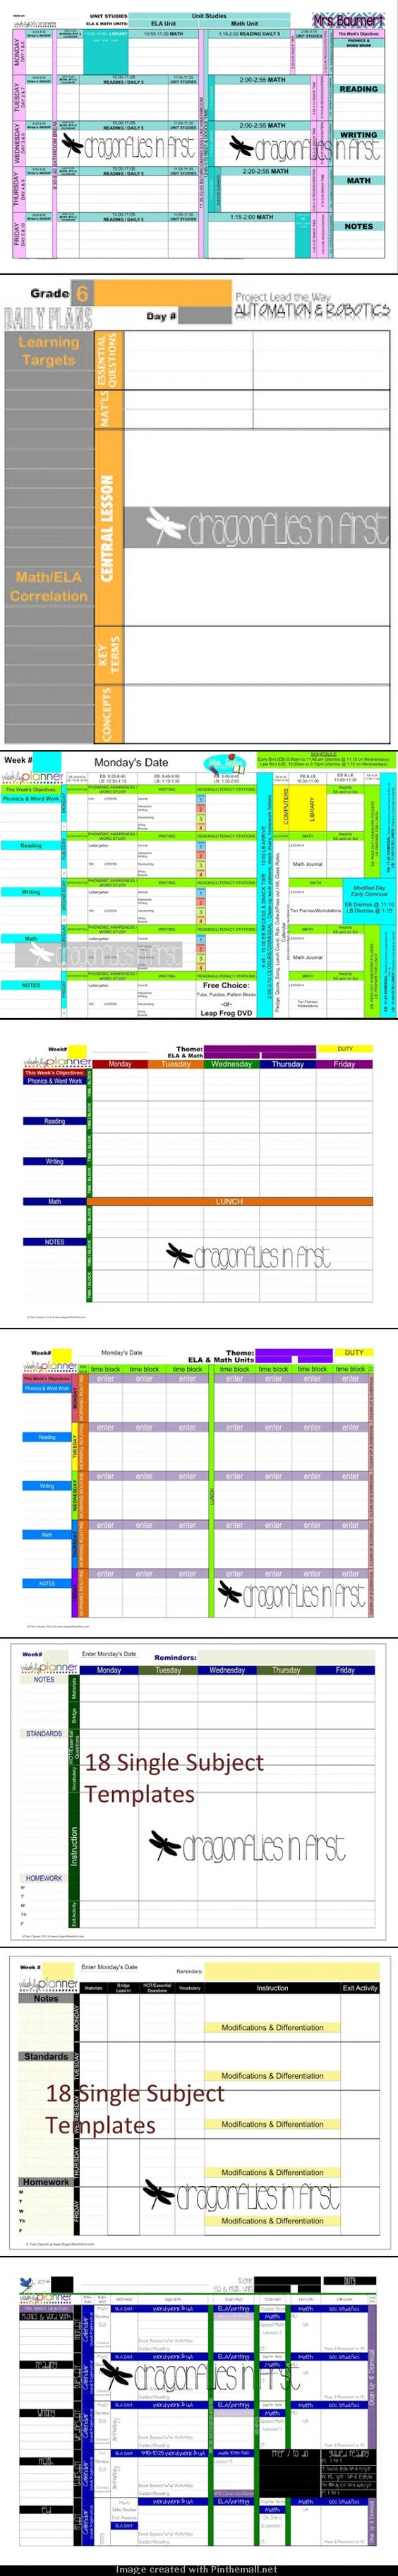 yearly lesson plan template - get organized for the new year digital teacher plan book